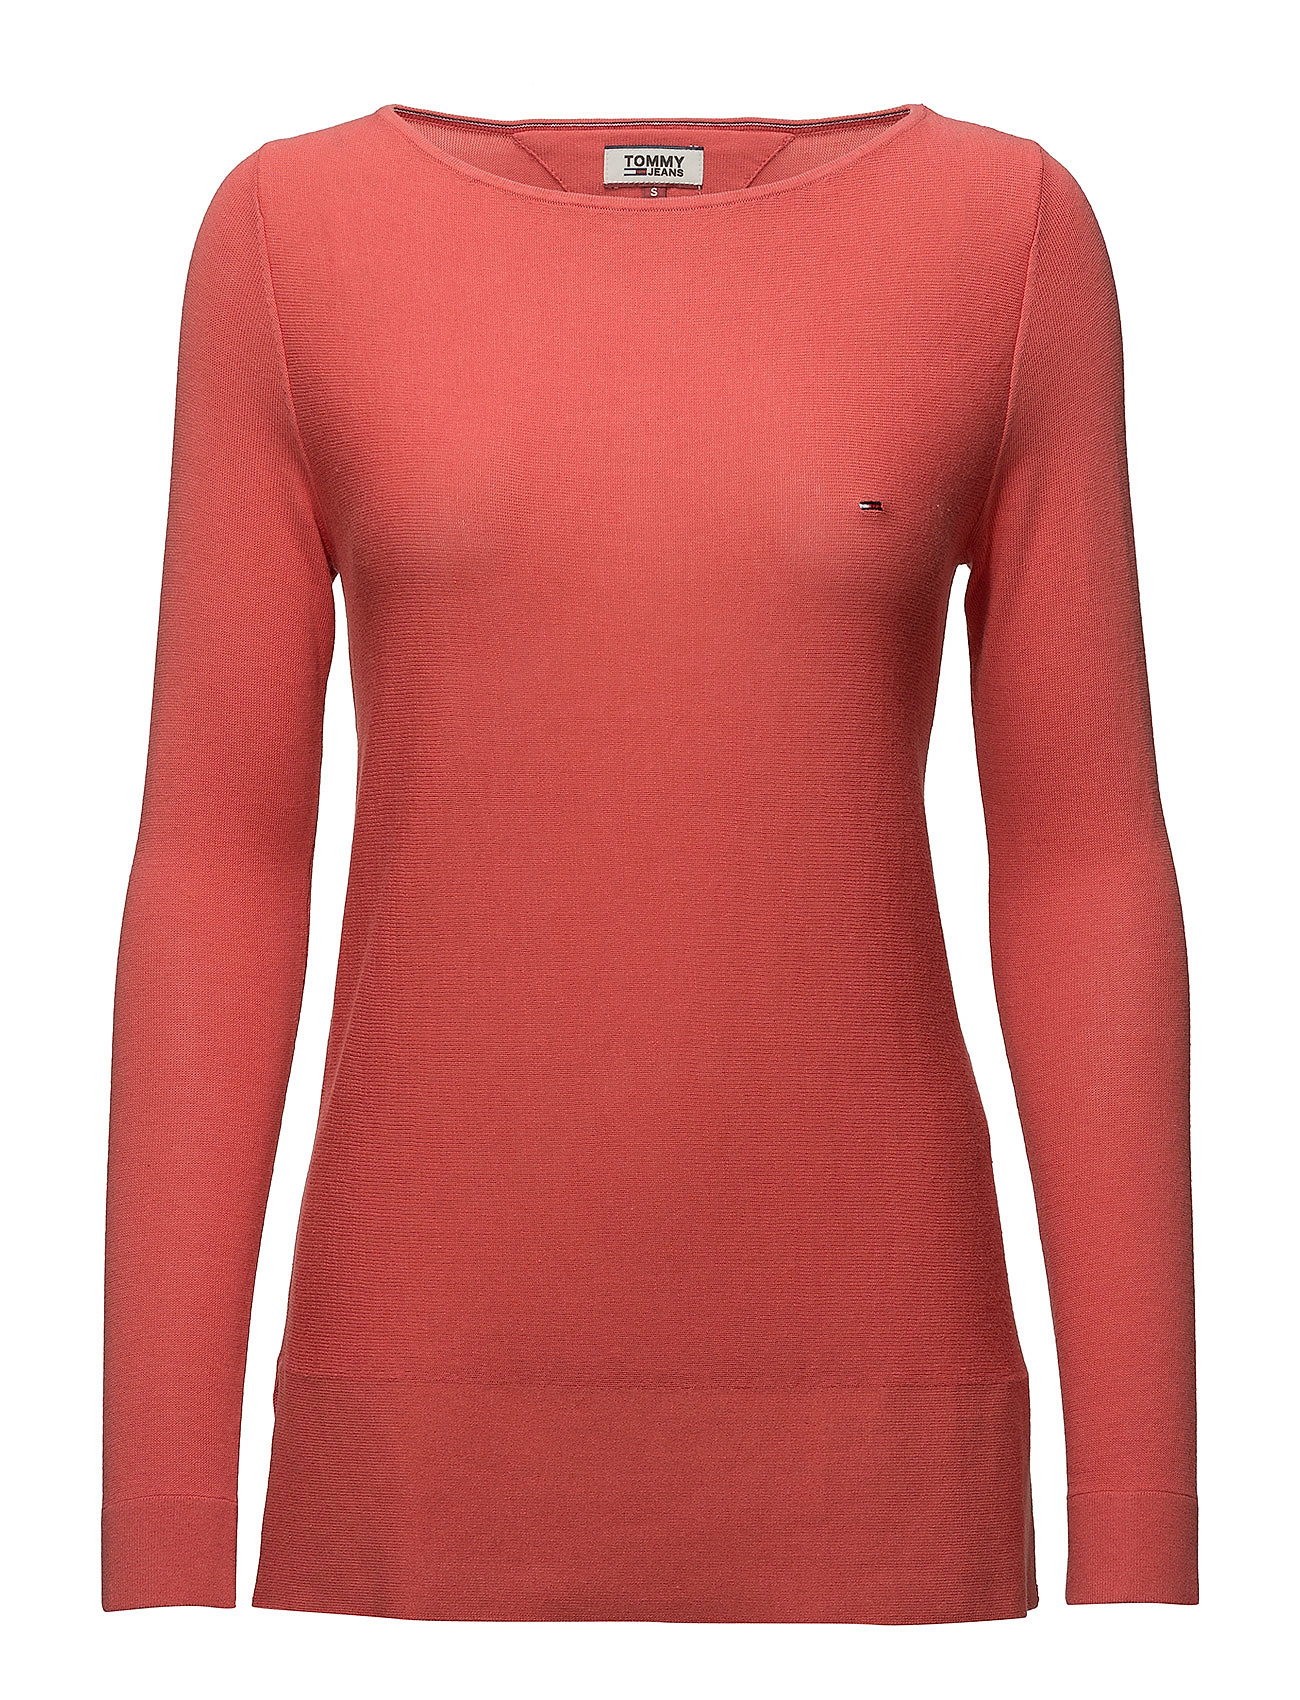 Tommy Jeans TJW ESSENTIAL BOAT N - SPICED CORAL